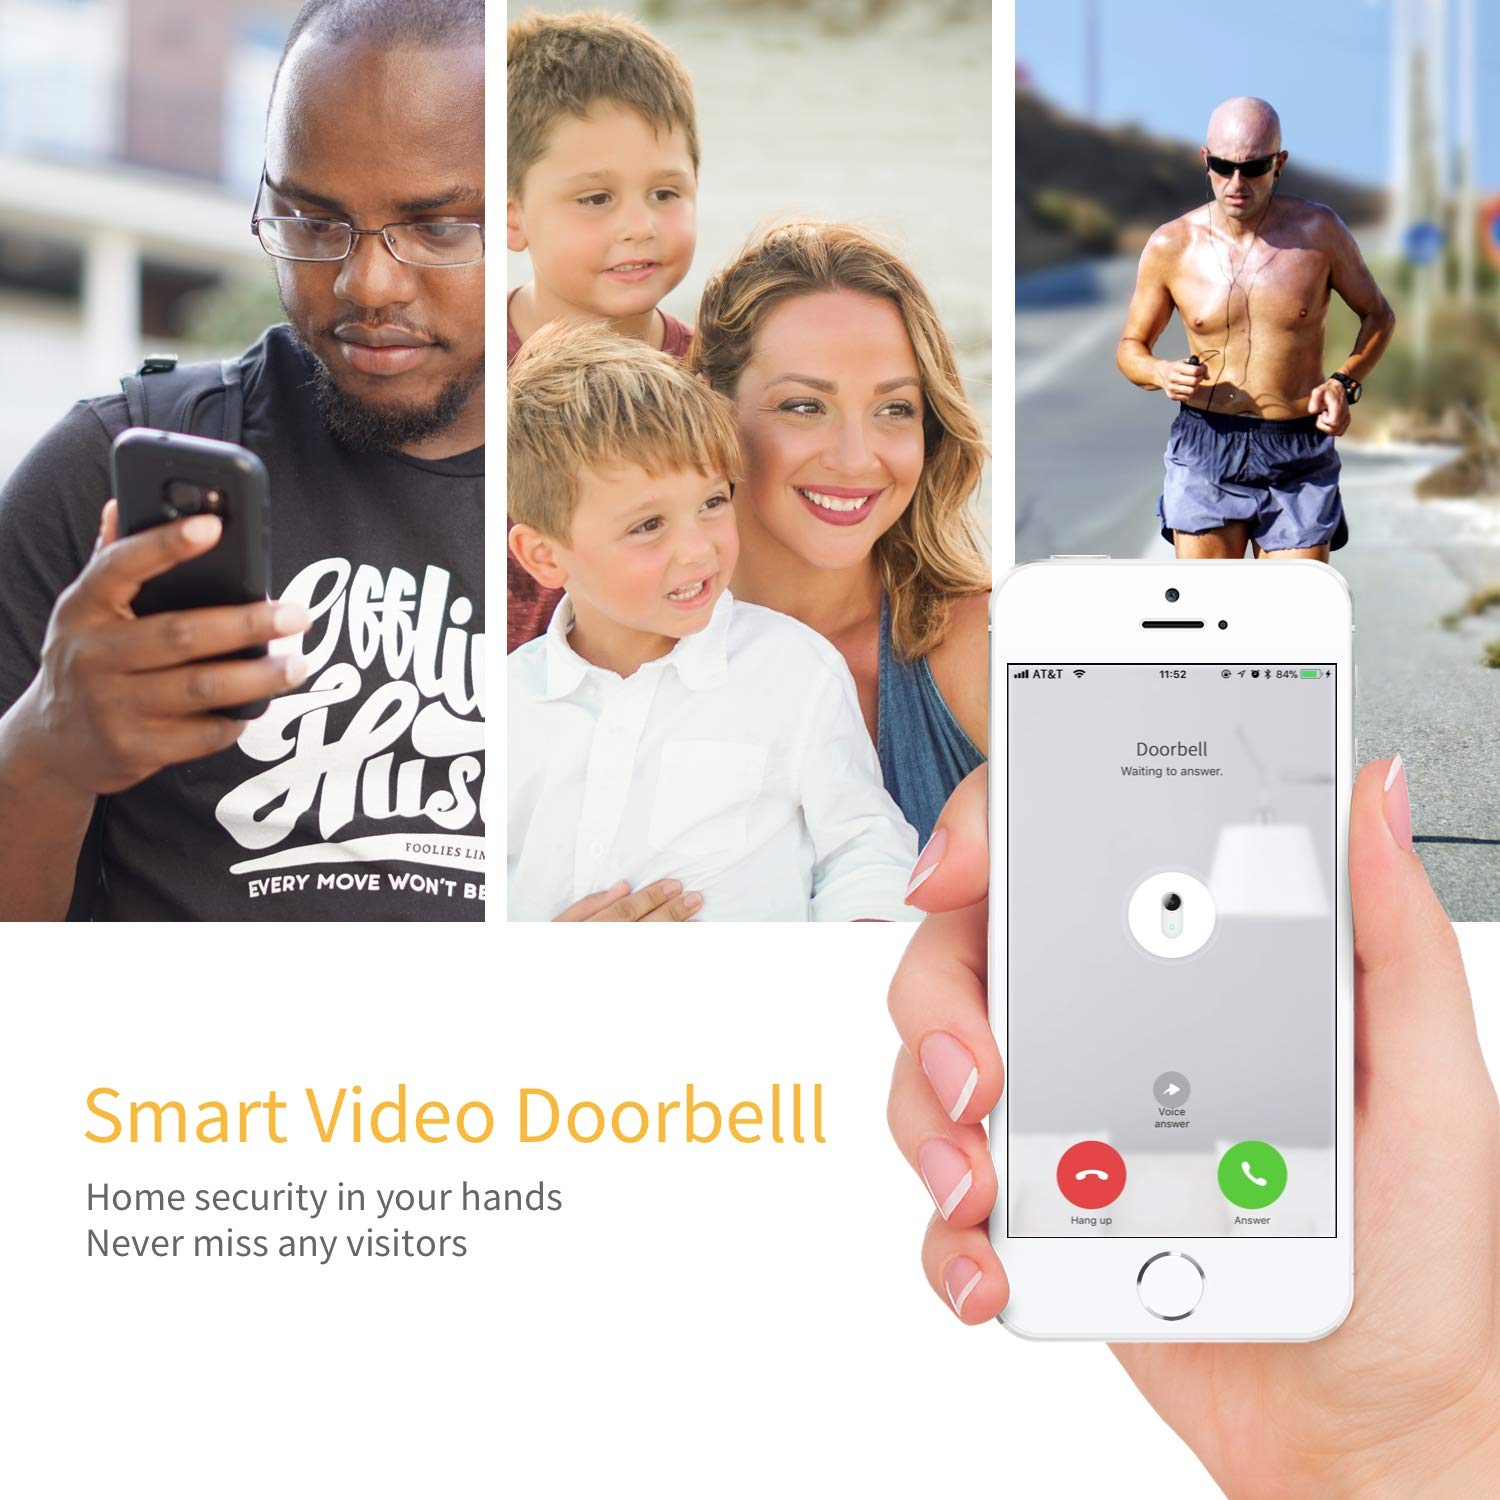 Smart Video Doorbell, Famisafe 960P HD WiFi Security Camera Doorbell with Chime, Real-time HD Video Doorbell, 2-Way Audio, Free Cloud Service, Night Vision and Works with Alexa, APP for iOS Android by Famisafe (Image #3)